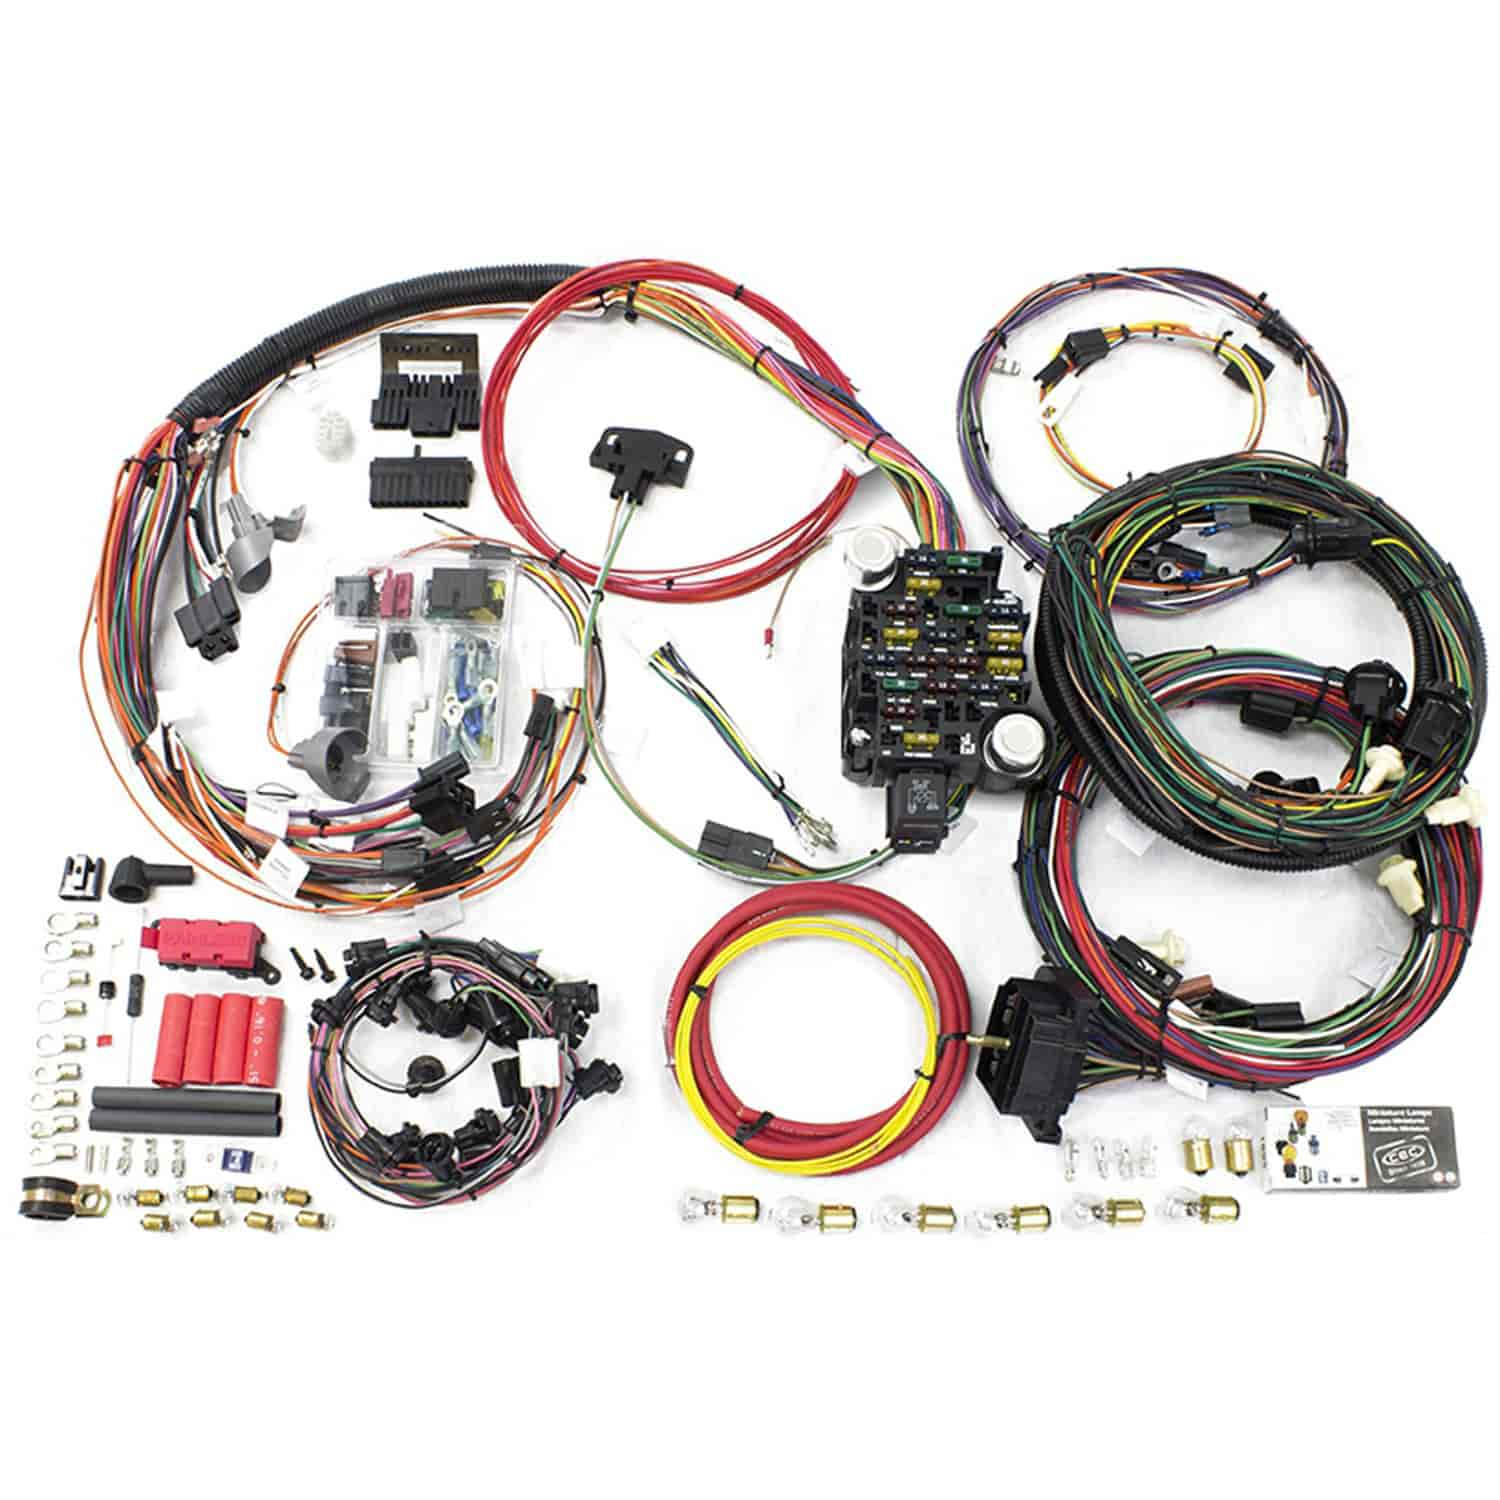 painless performance products 20130 direct fit 26 circuit wiring harness 1970 1972 chevy